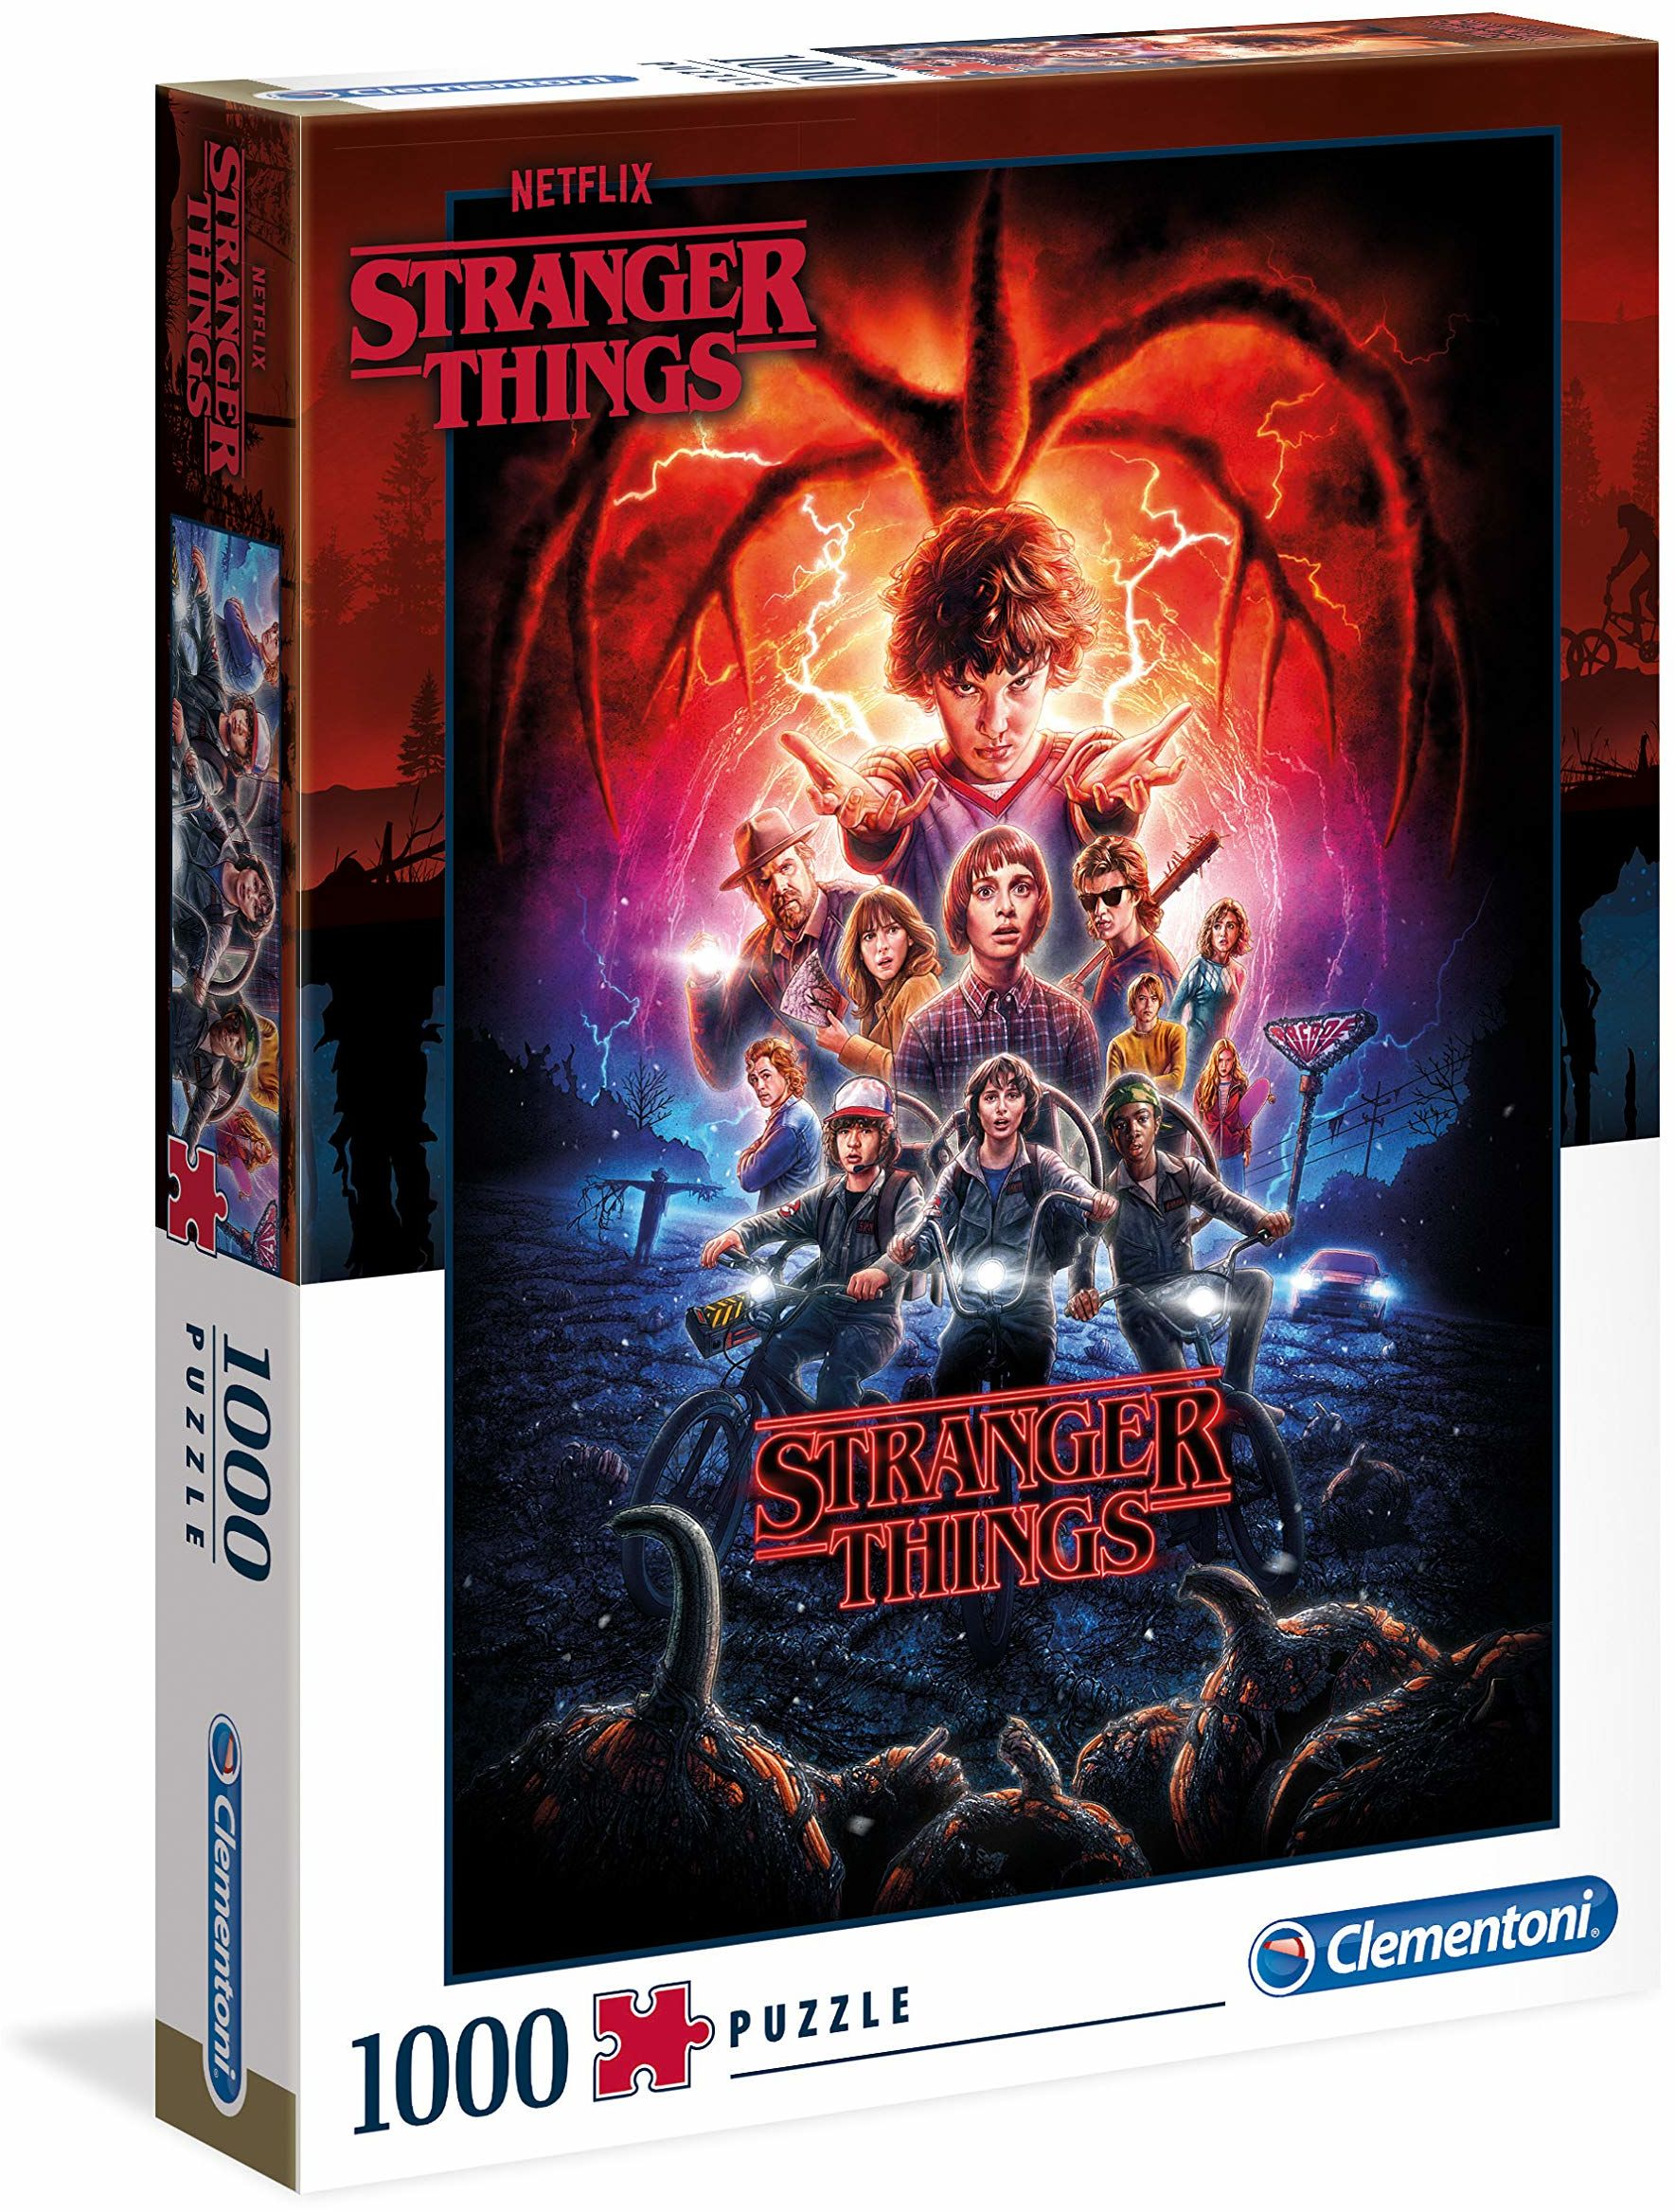 Clementoni 39543 Stranger Things Things-1000 szt. Puzzle 2